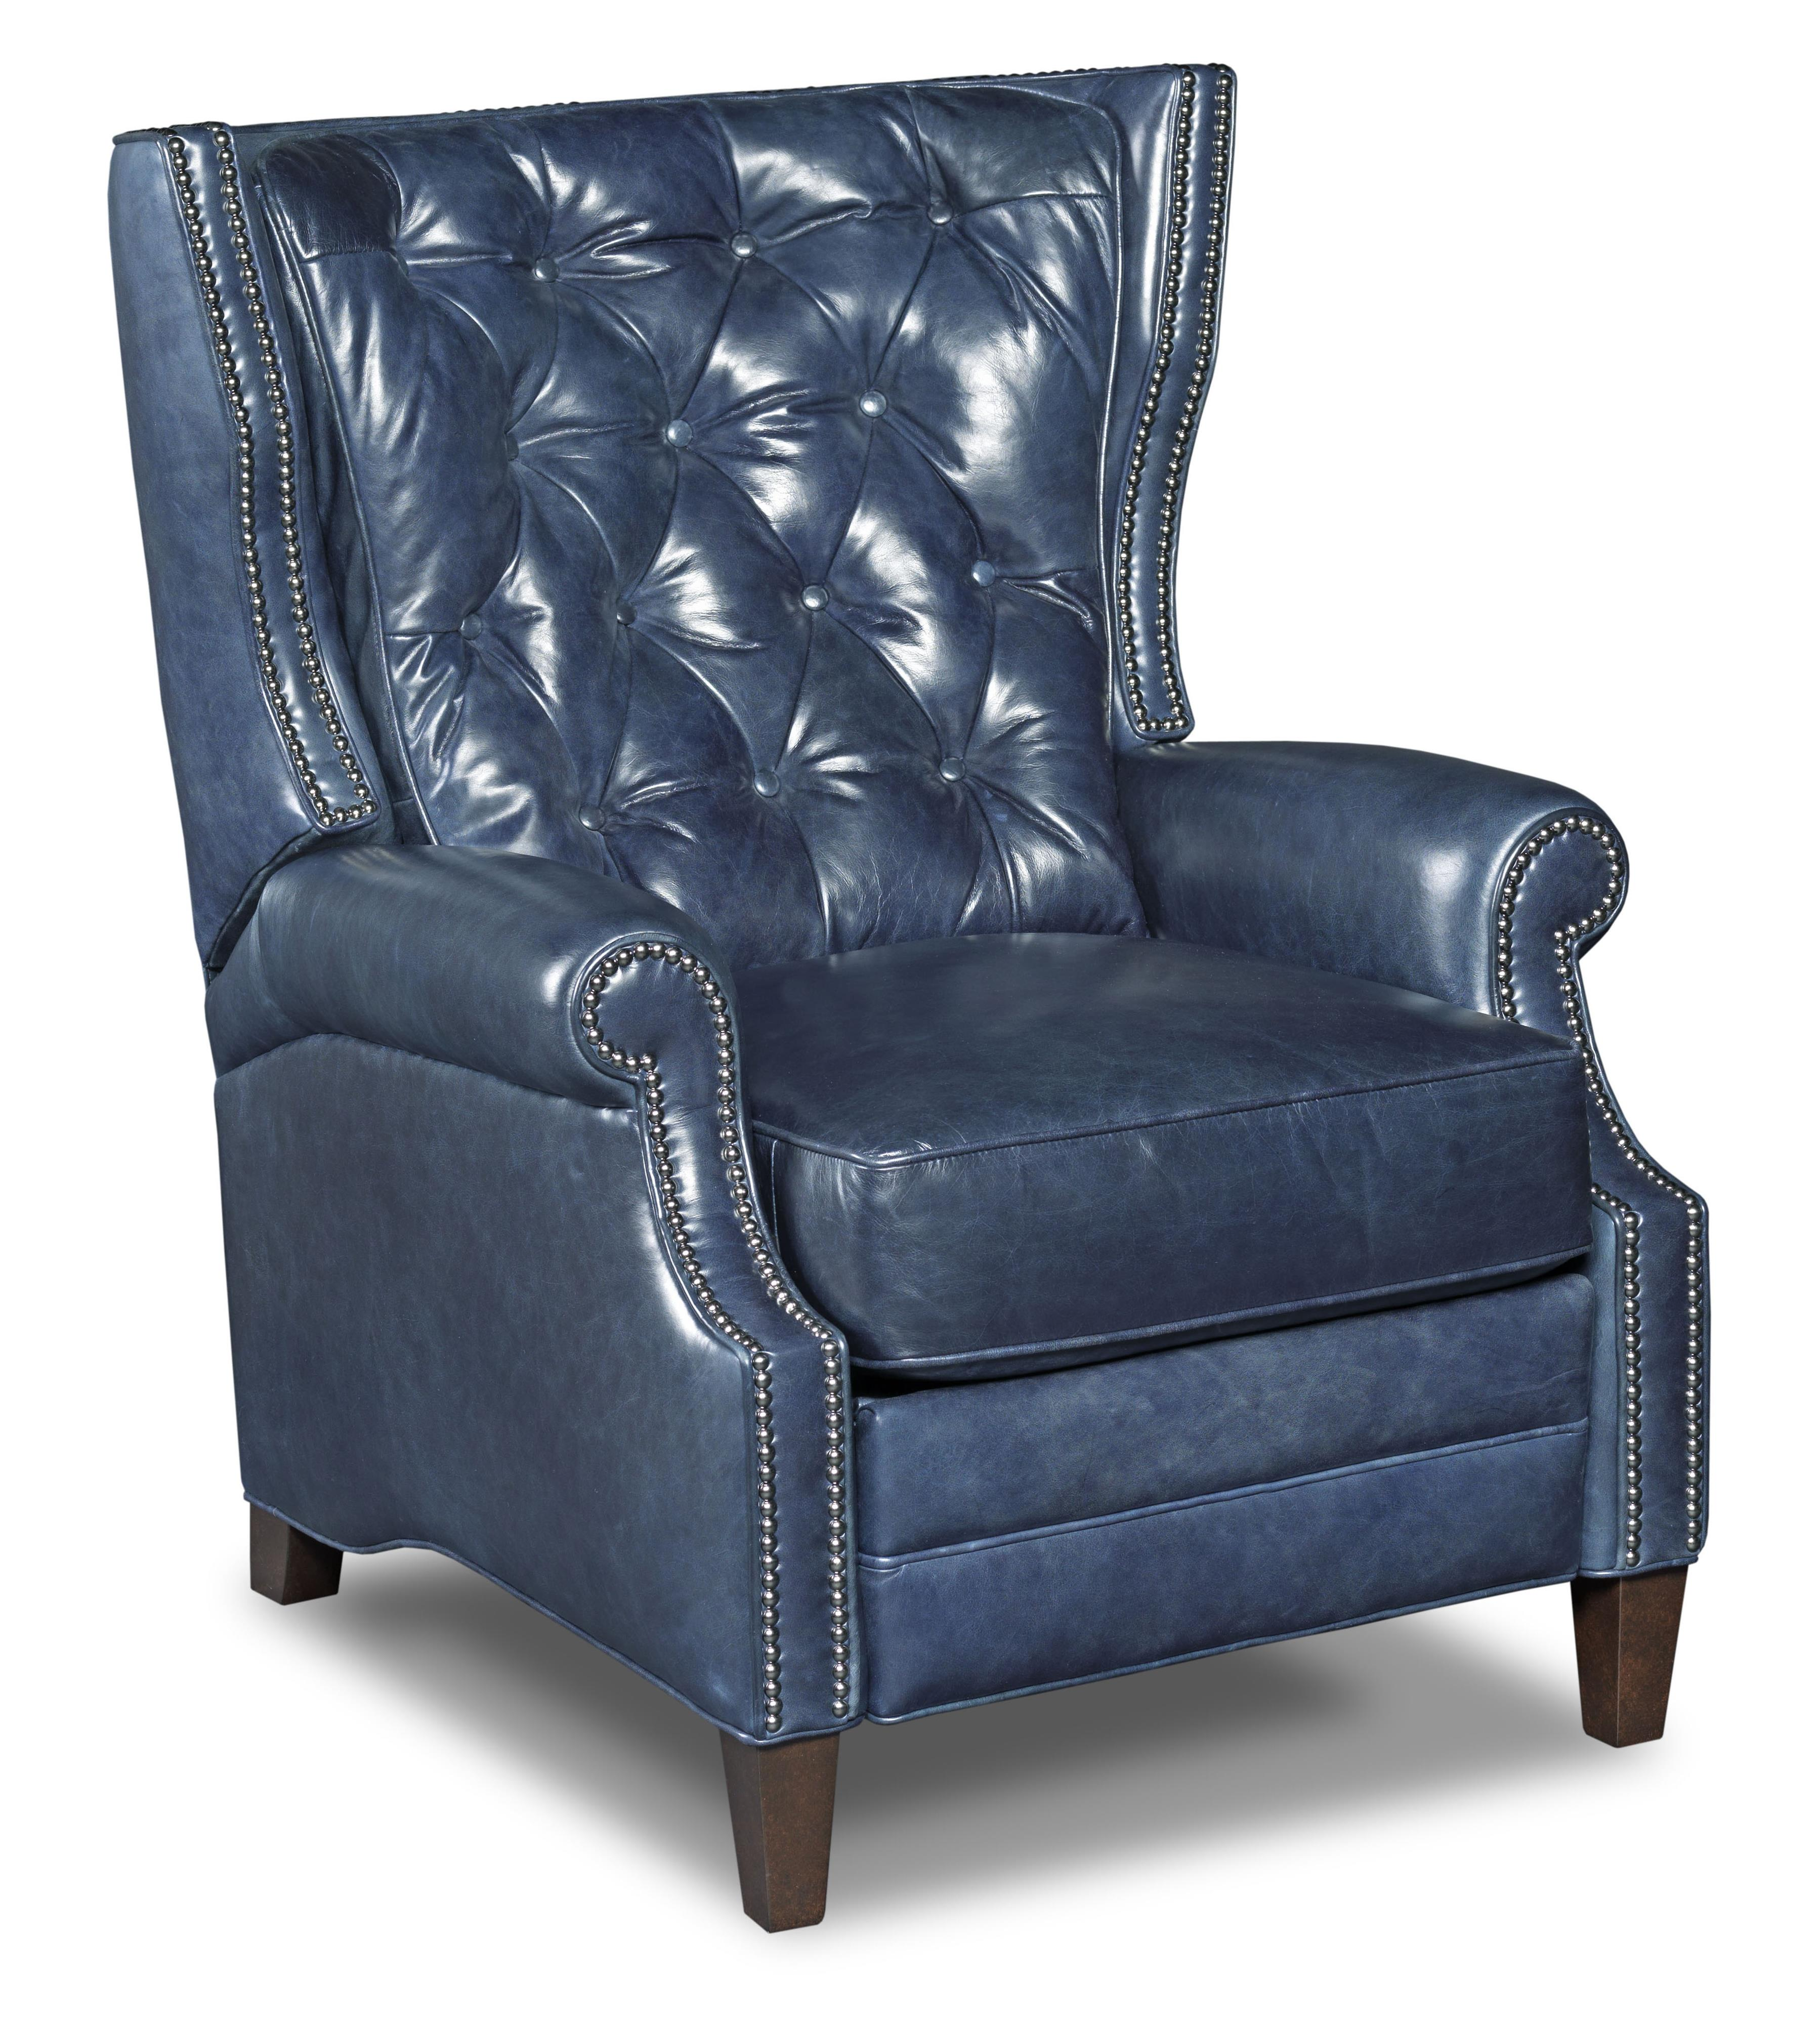 Hooker Furniture Seven Seas Seating - Reclining Chairs High Leg Recliner - Item Number: RC159-048